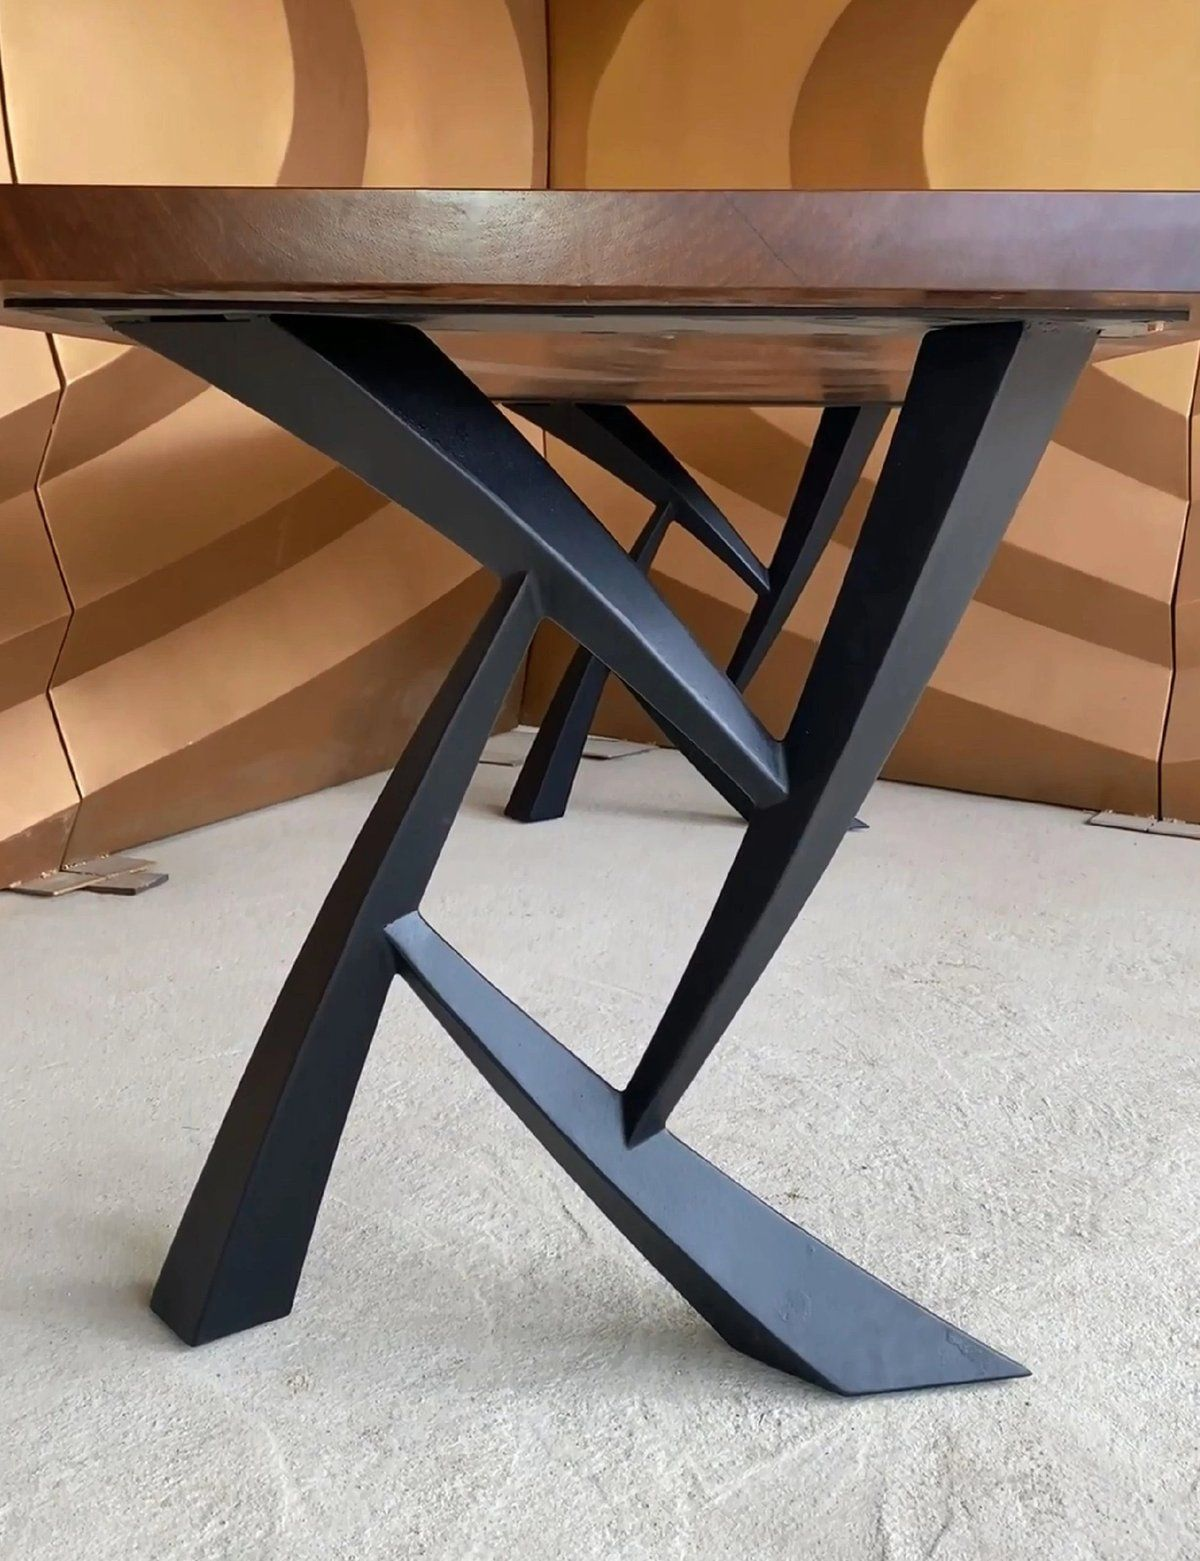 Elegance table legs 411 Draco (Free Shipping USA) in 2020